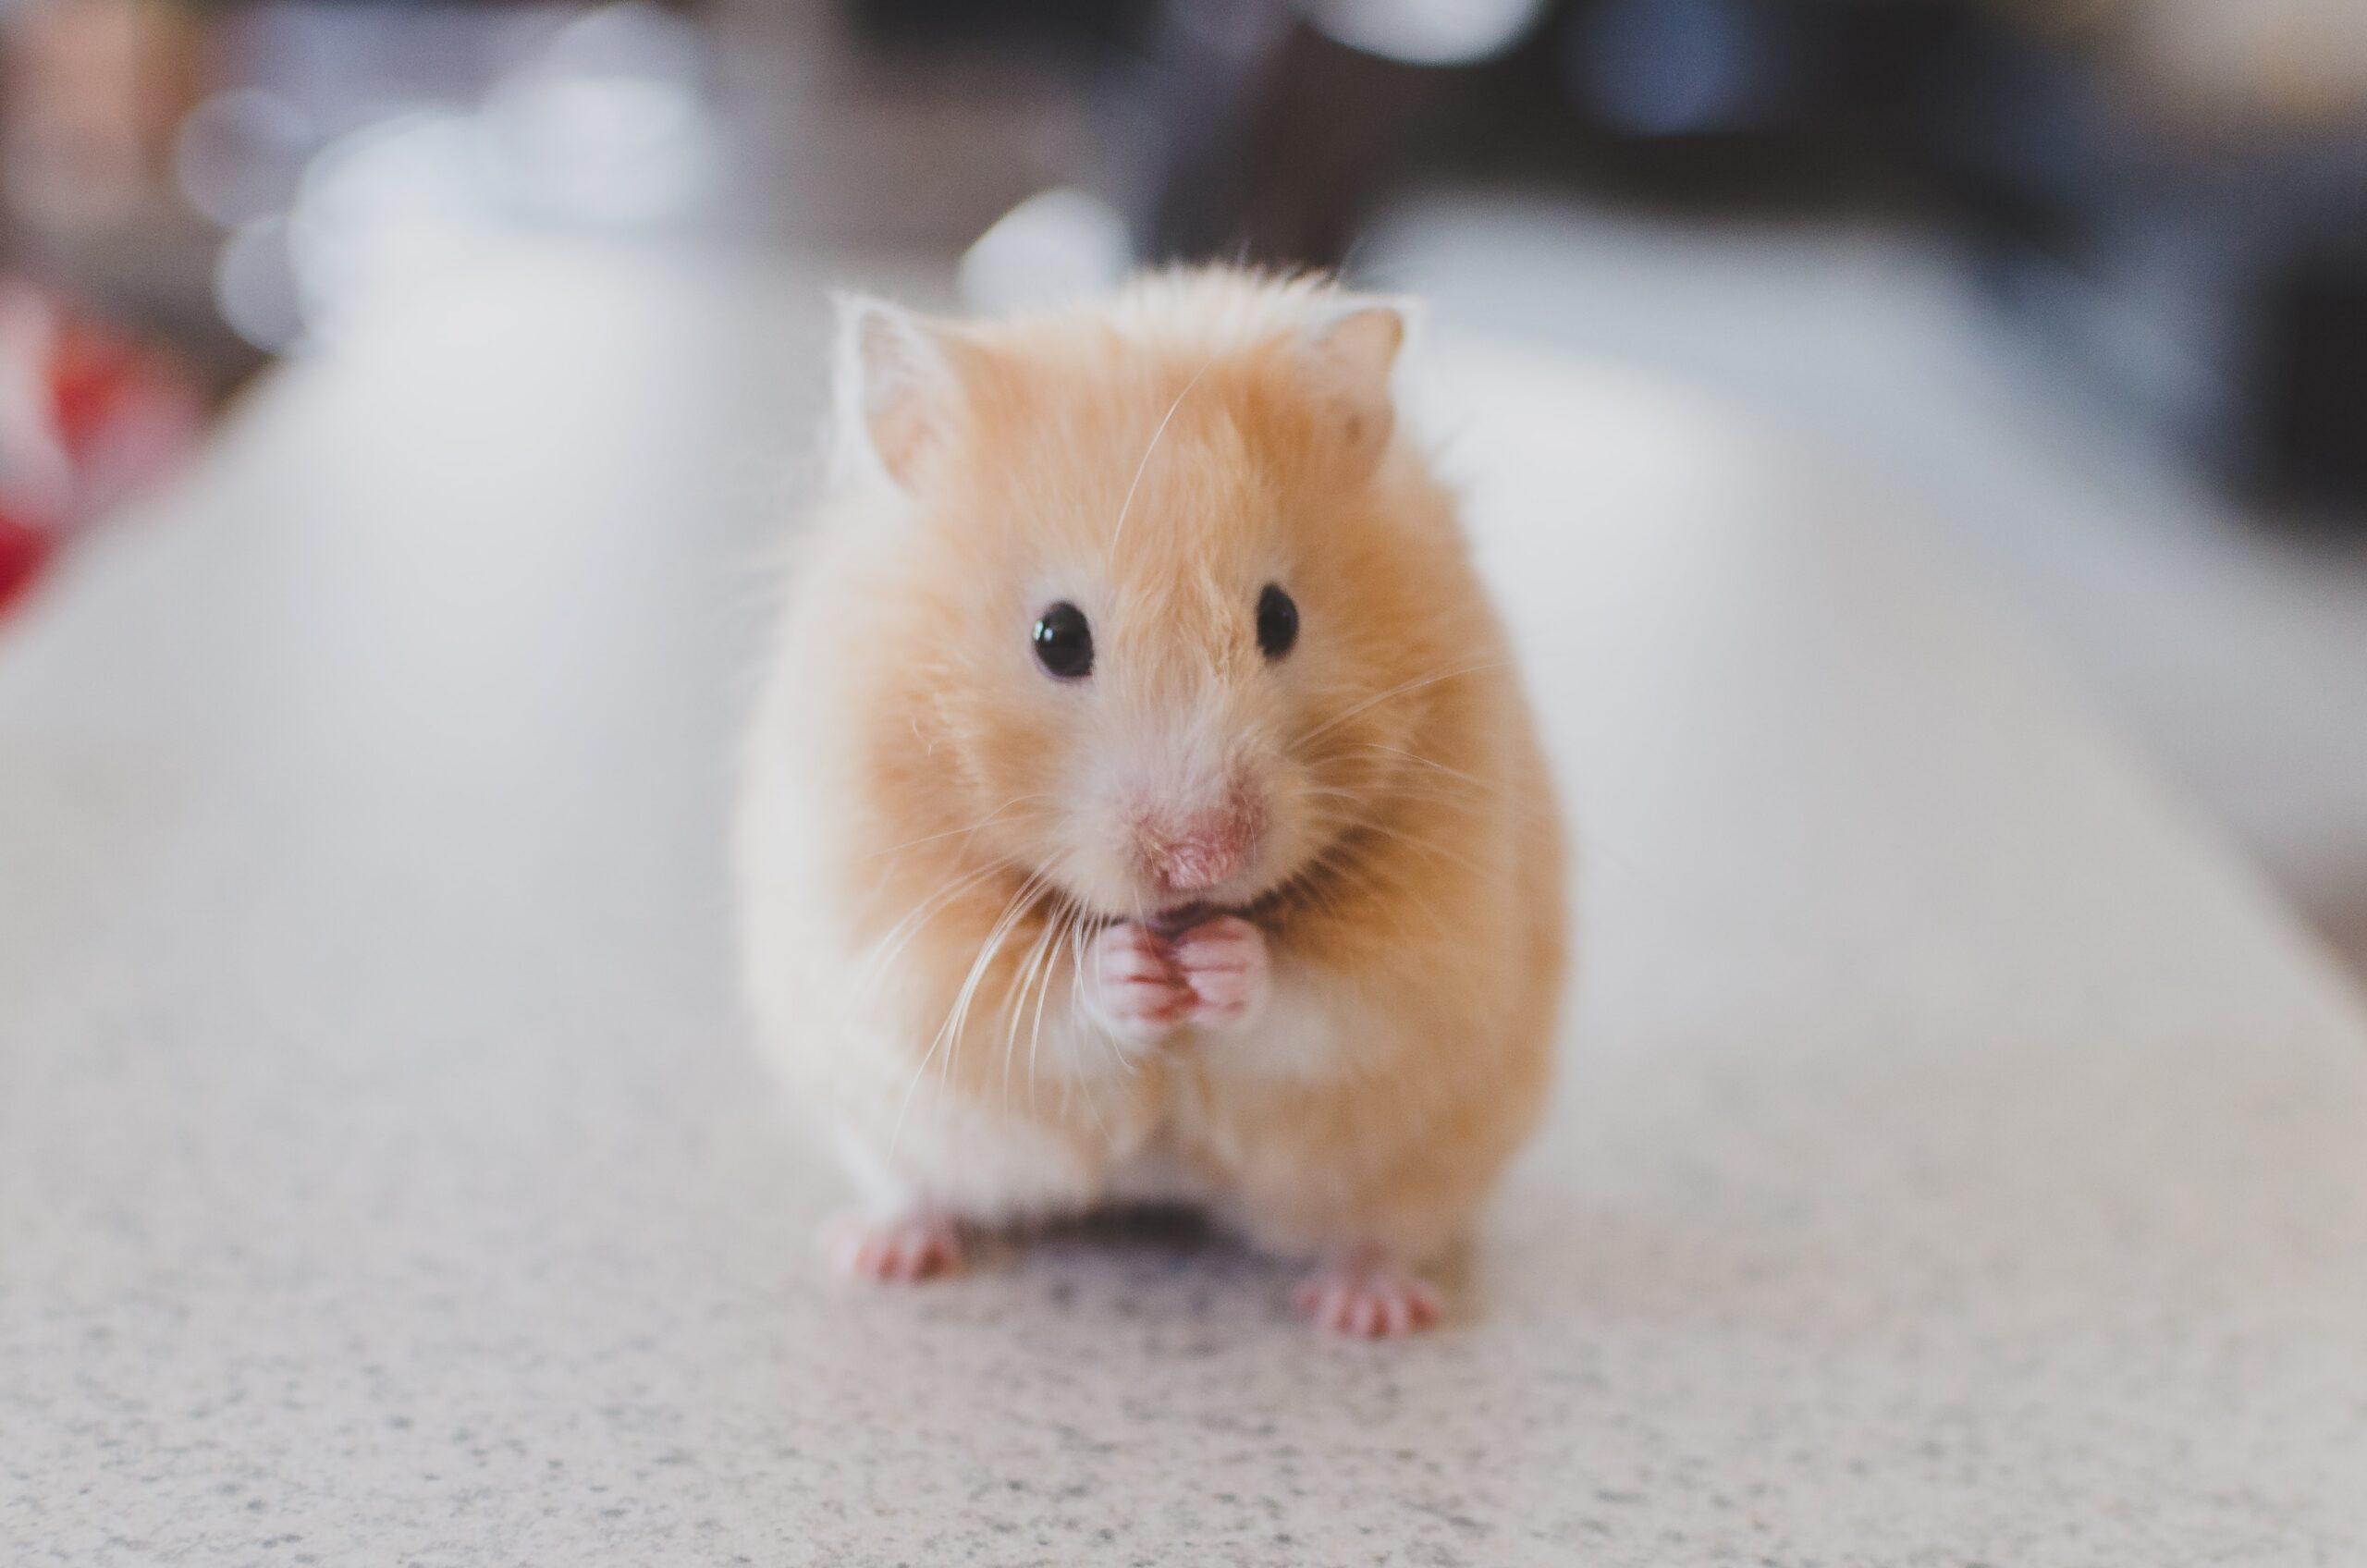 FDA Purchases 'Fresh' Aborted Babies From Criminal Organization To Create 'Humanized Mice'